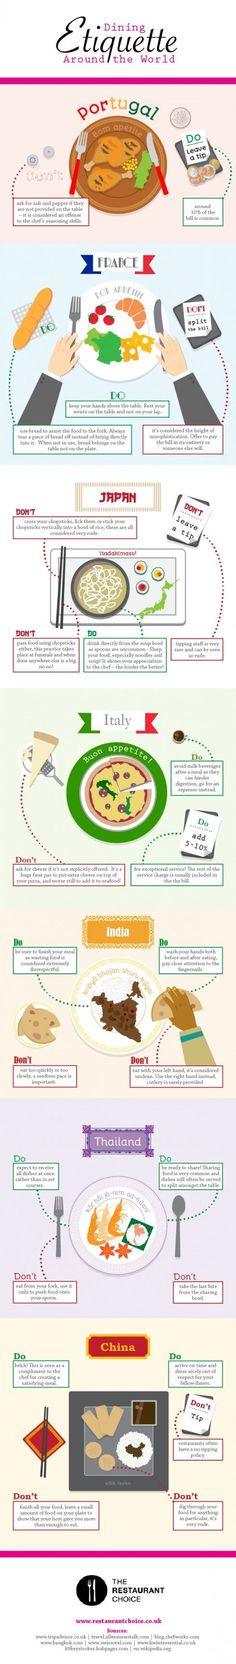 Make a good impression by learning dining etiquette from around the world #infographic #traveltips #infografía